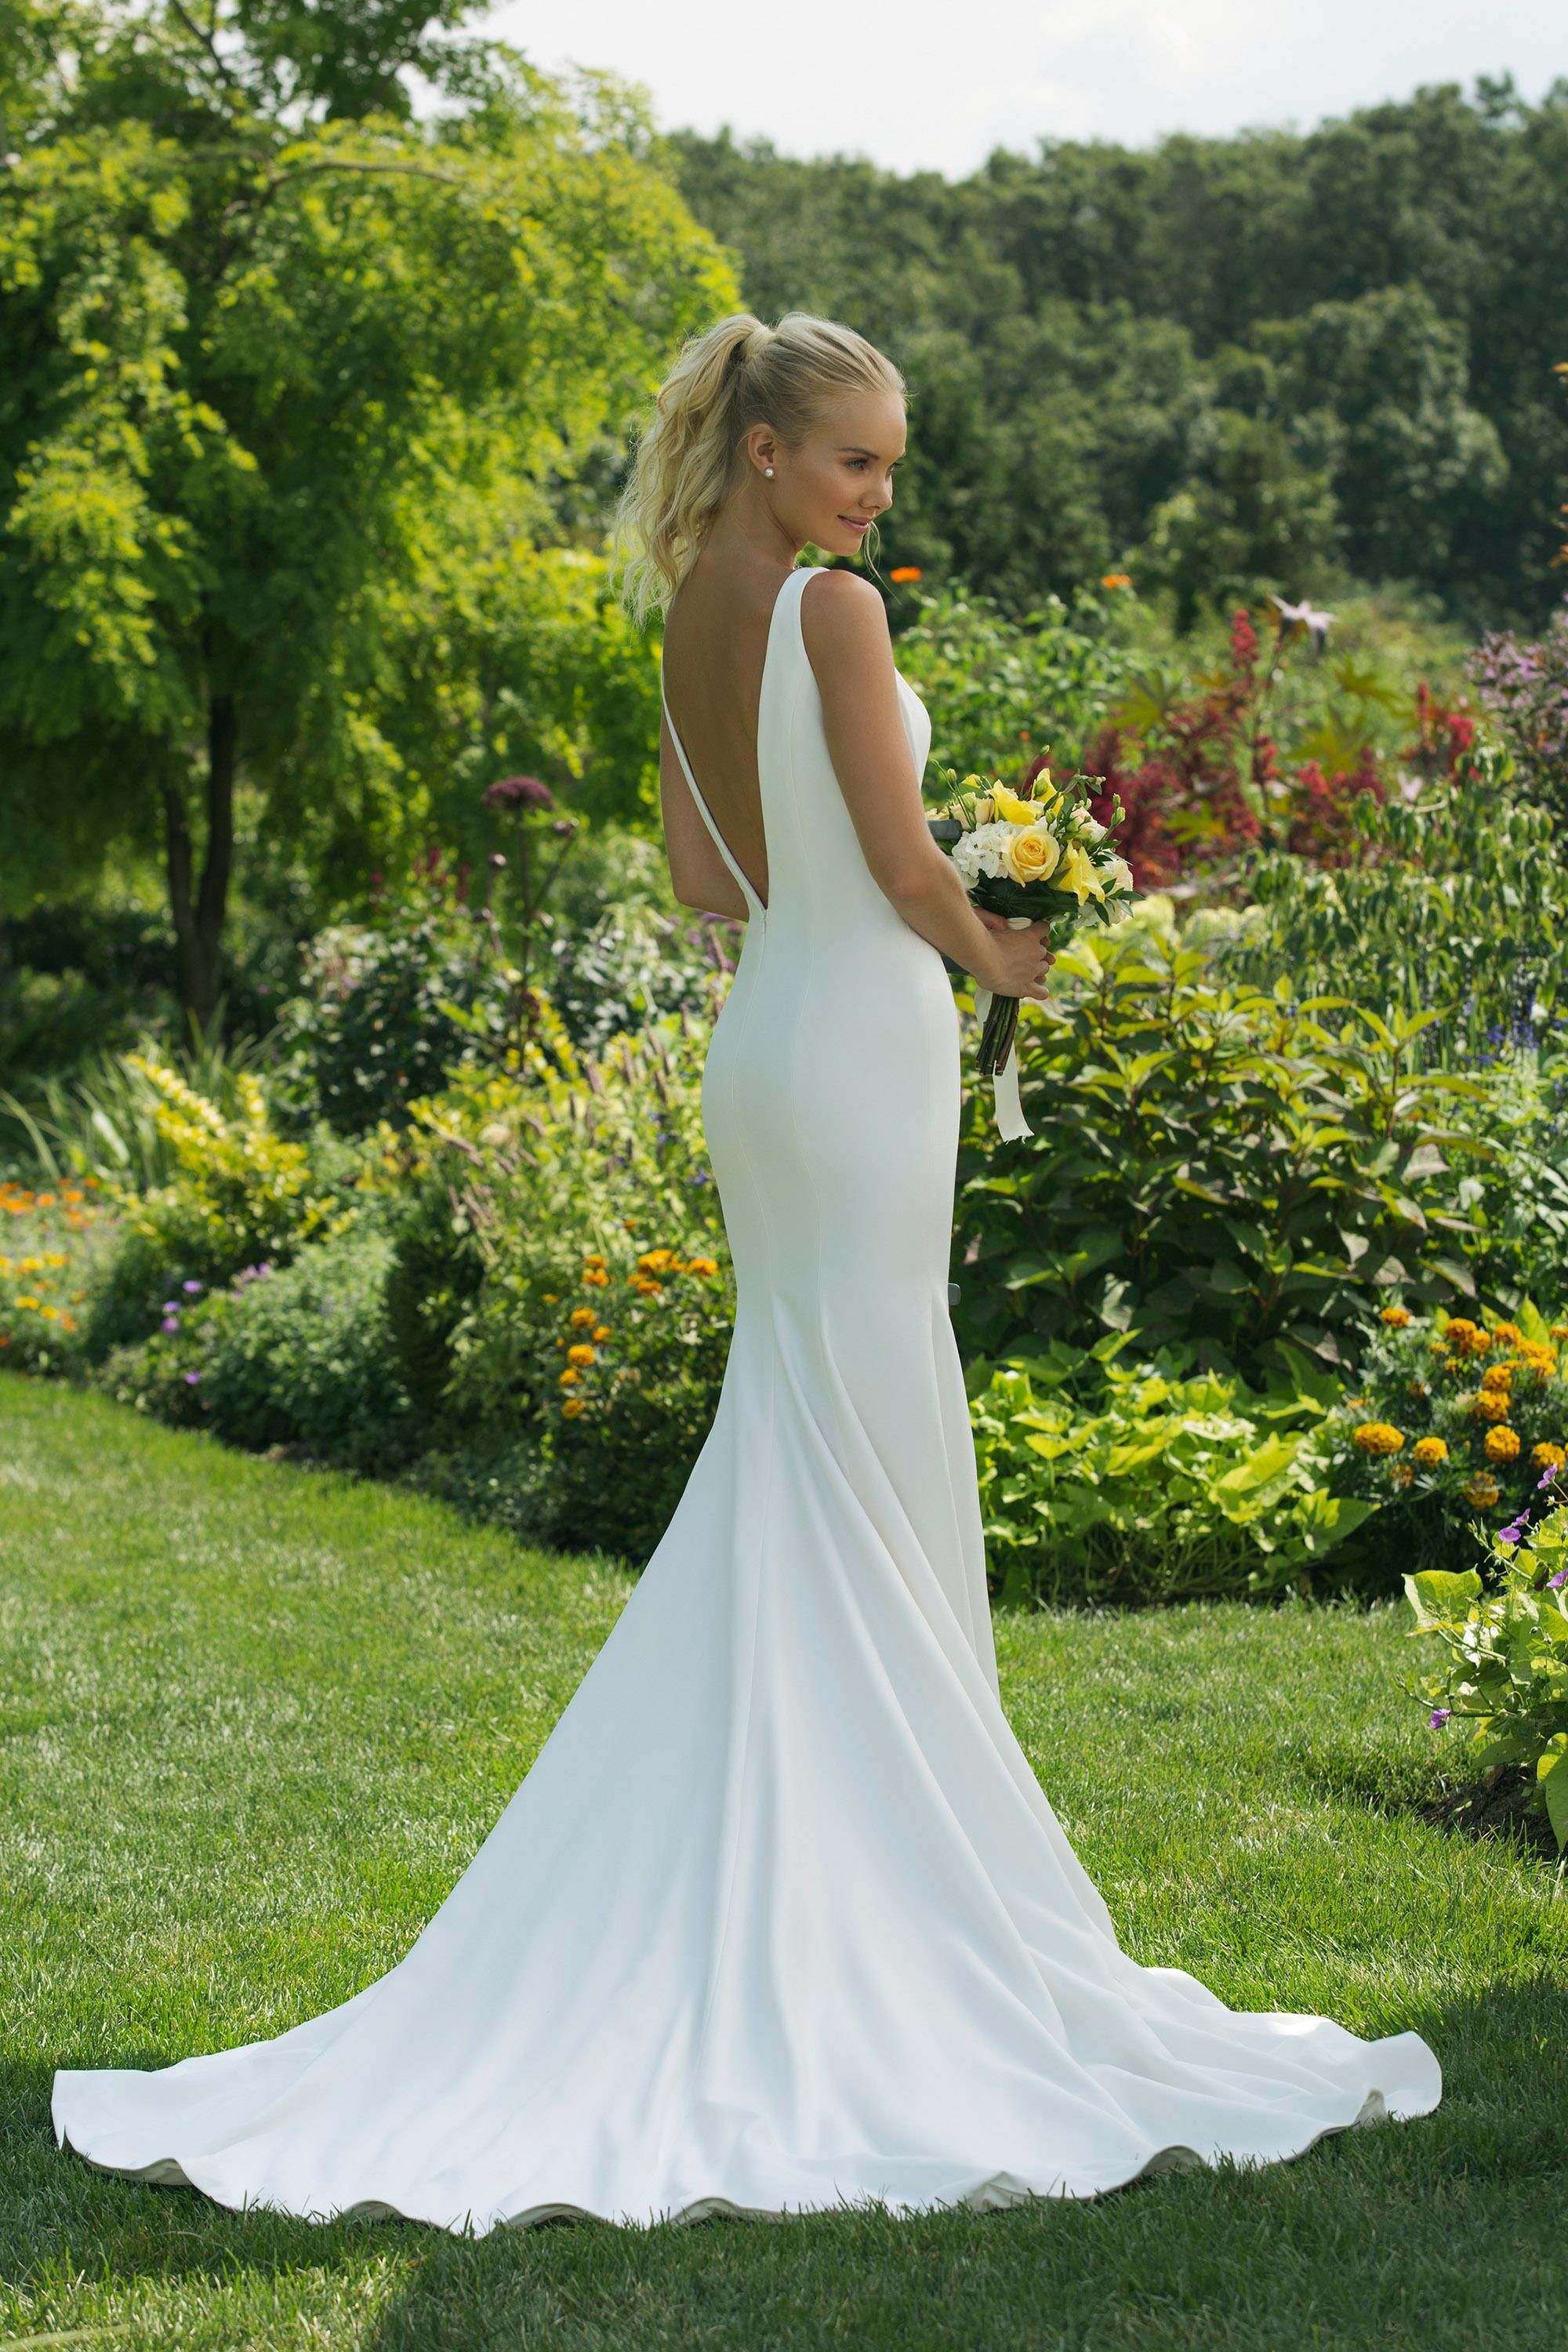 11018 Wedding Dress from Sweetheart hitched.co.uk